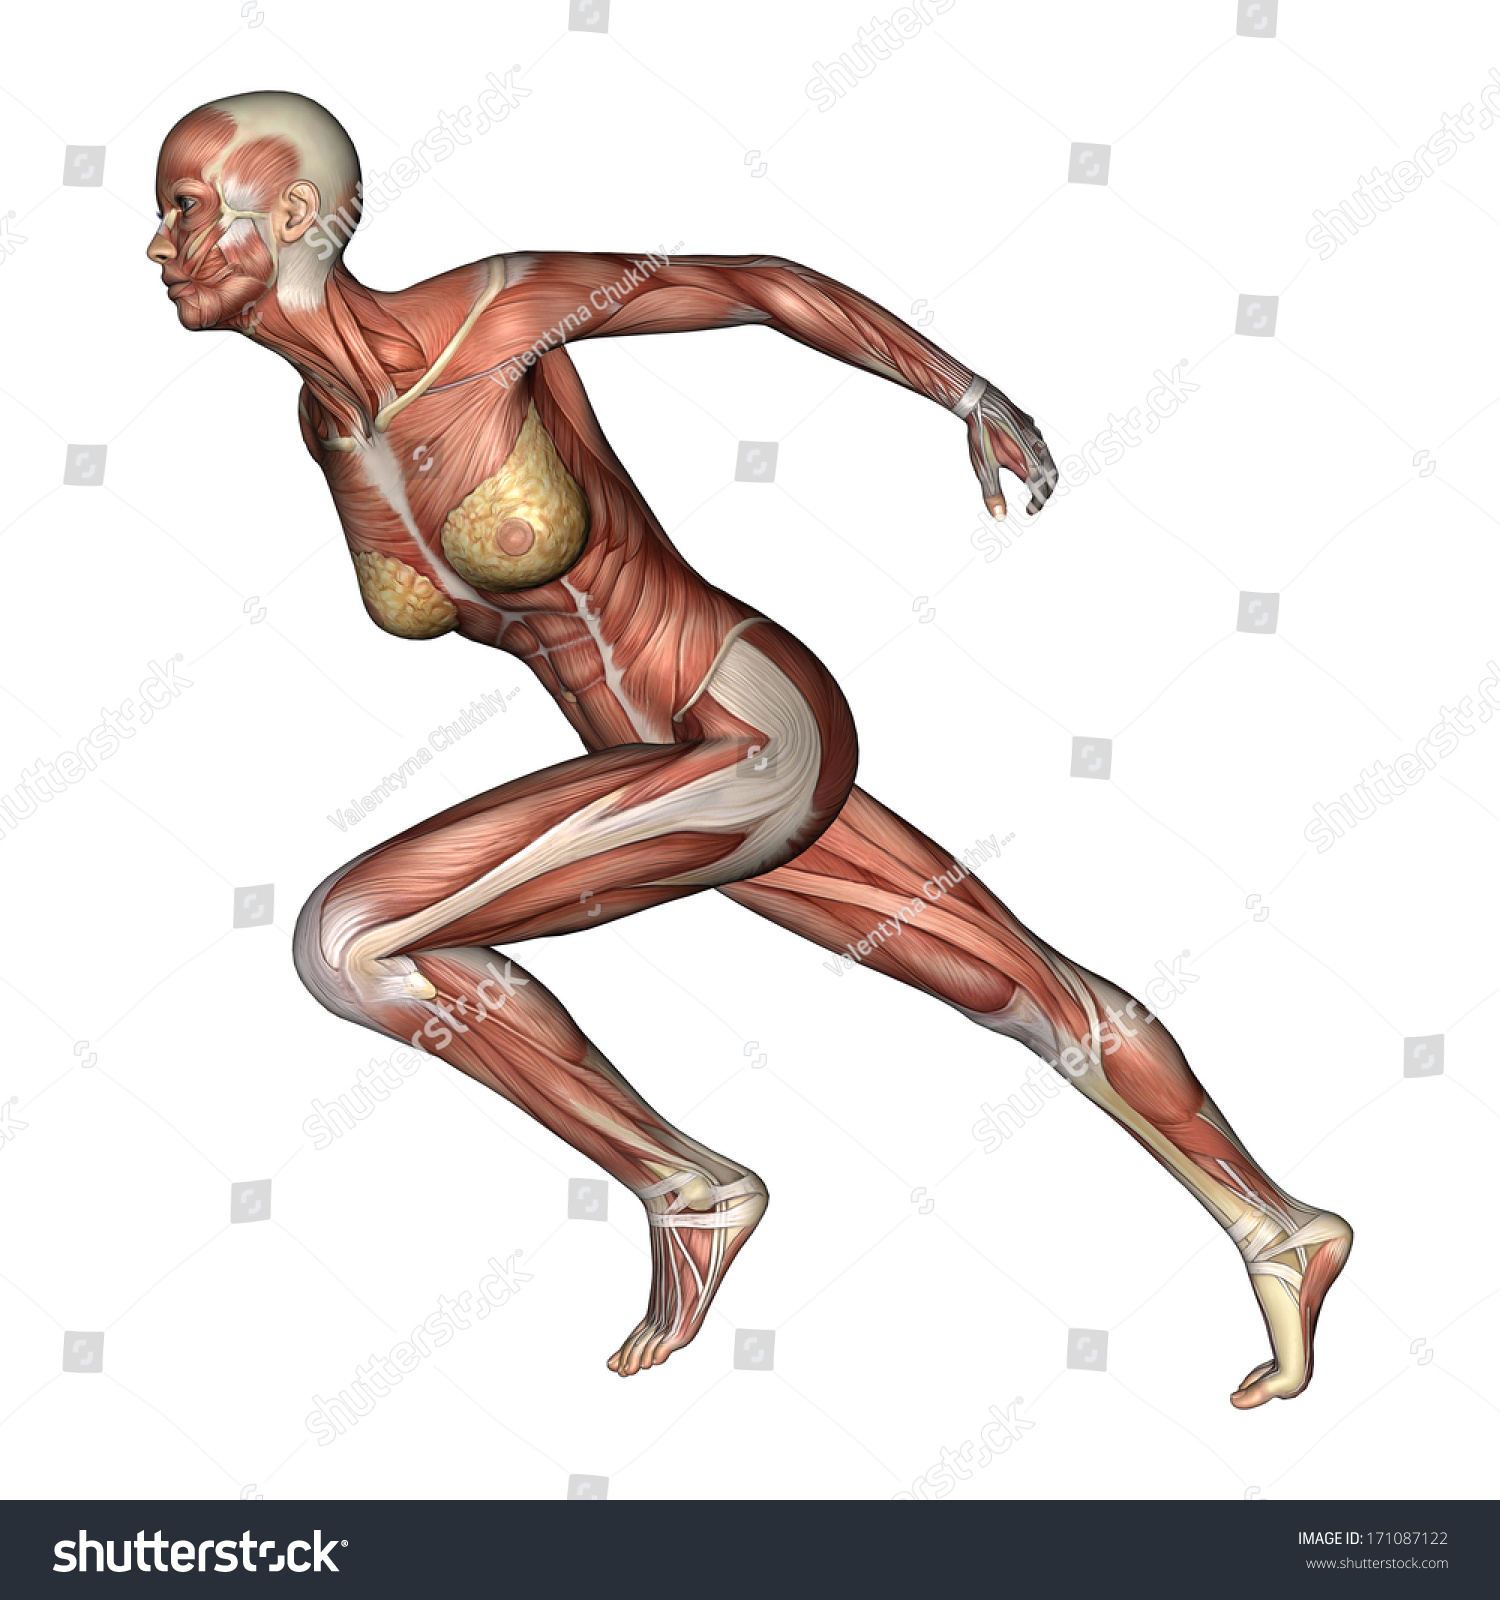 3d Digital Render Of A Running Female Anatomy Figure With Muscles